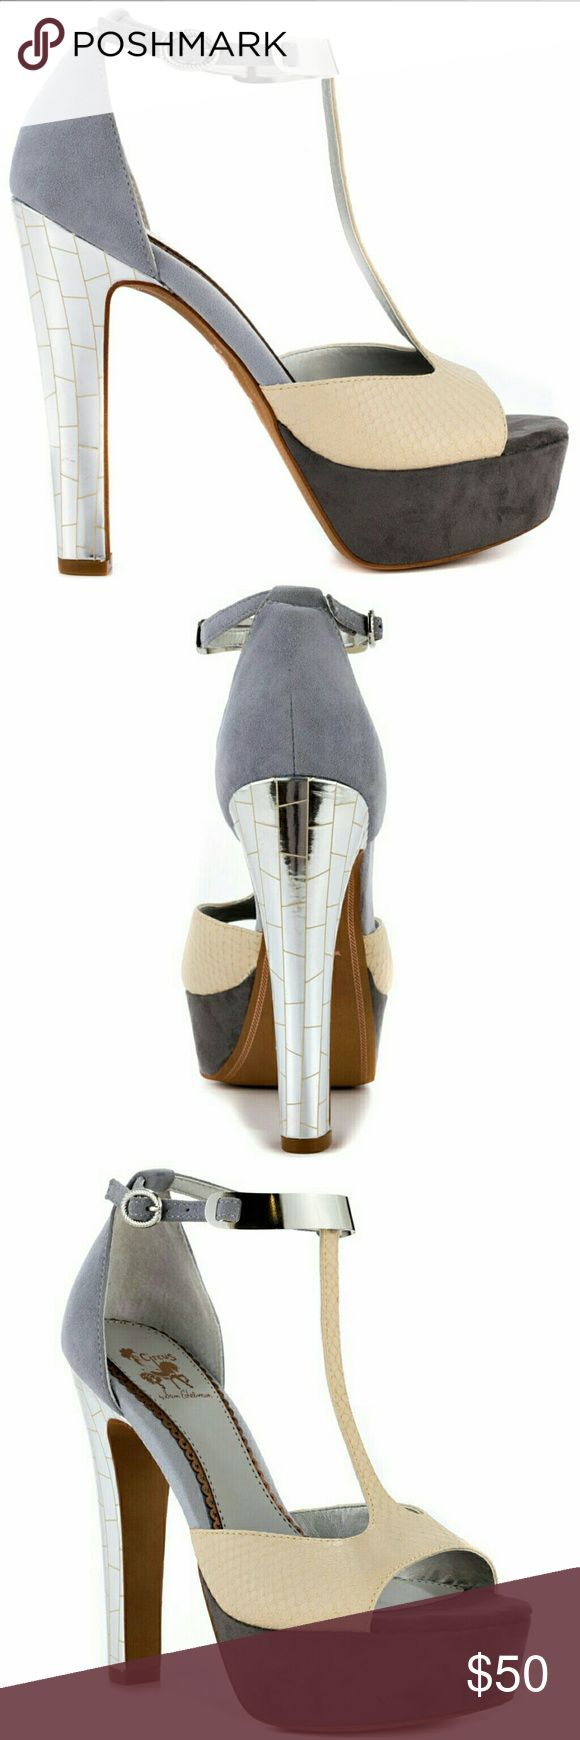 Sam Edelman Alexa Peep Toe Platform Suede Heels High Quality Metal and Suede finishes Worn on two occasions Offers Welcome *These will not disappoint* Sam Edelman Shoes Heels